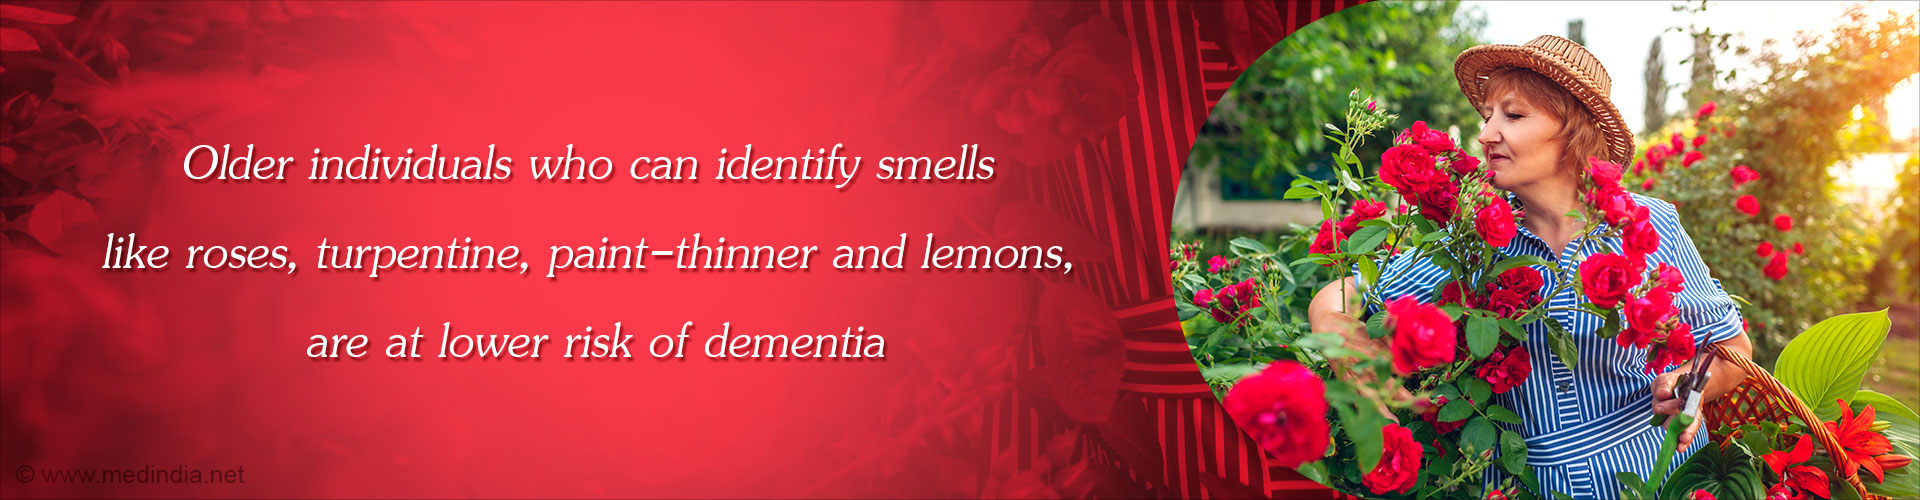 Dementia: Loss in the Sense of Smell, a Critical Indicator